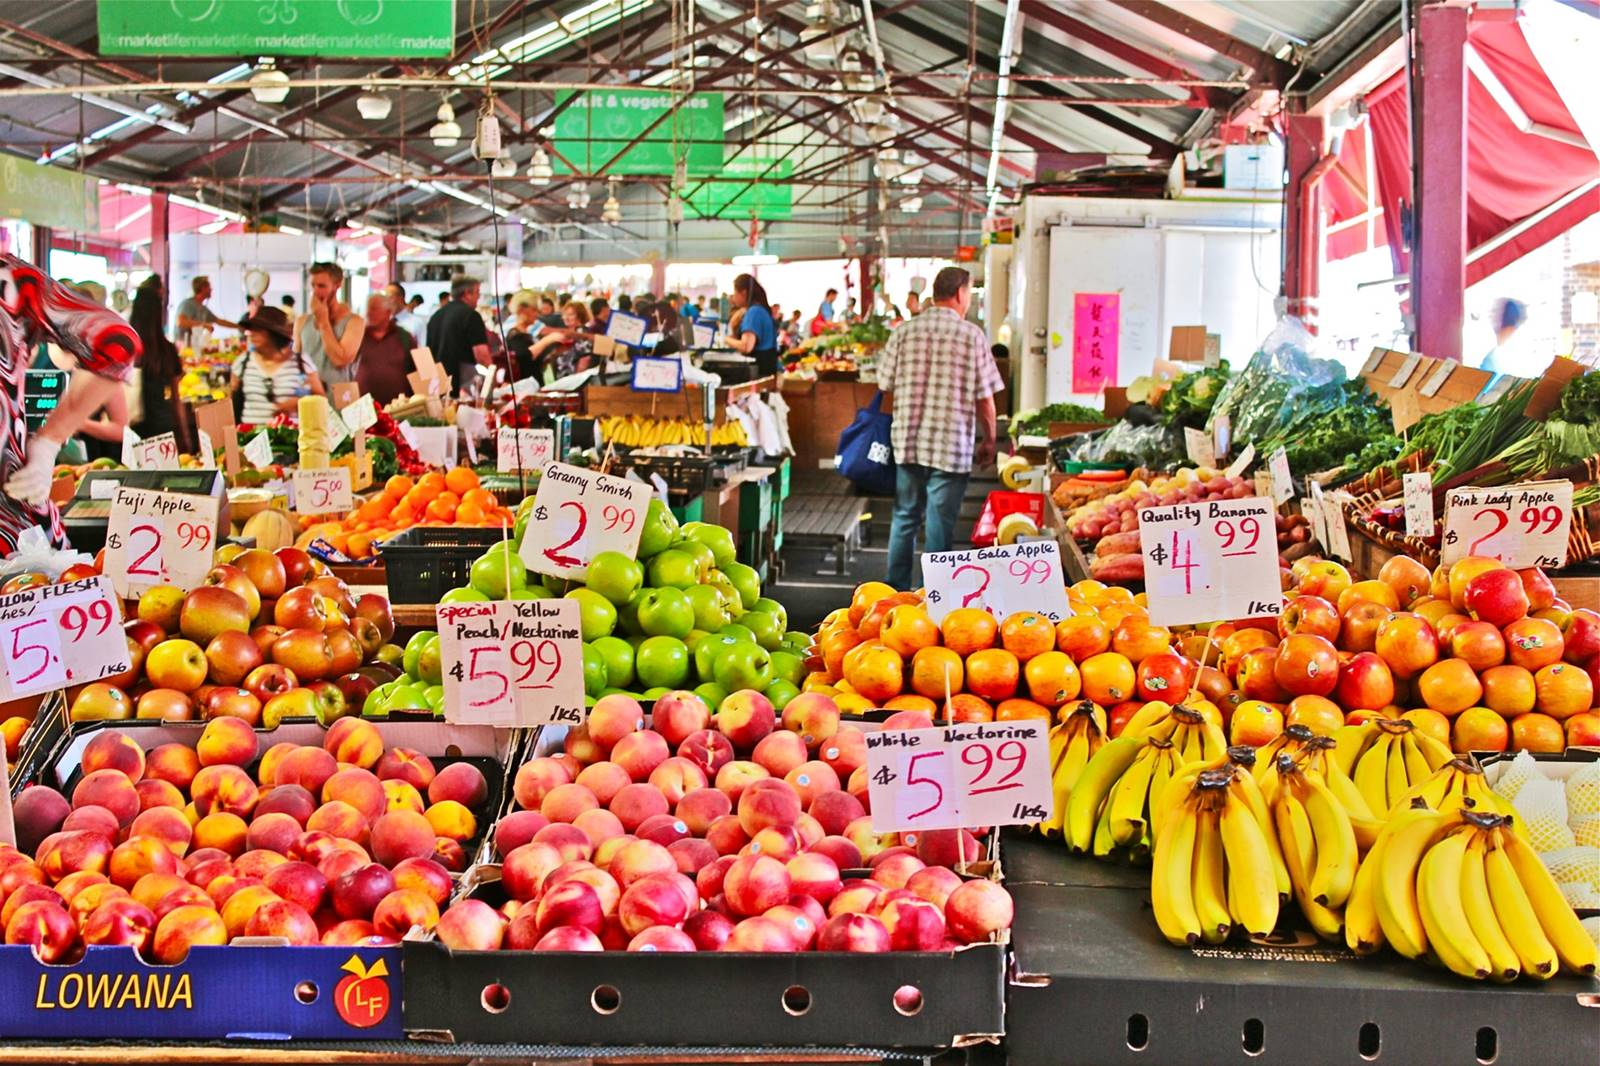 Melbourne-Queen Victoria Market-QVM-CBD-Attraction-Recommendation-Map-Itinerary-Tourism-Independent Travel-Travel Blog-Must visit-Must See